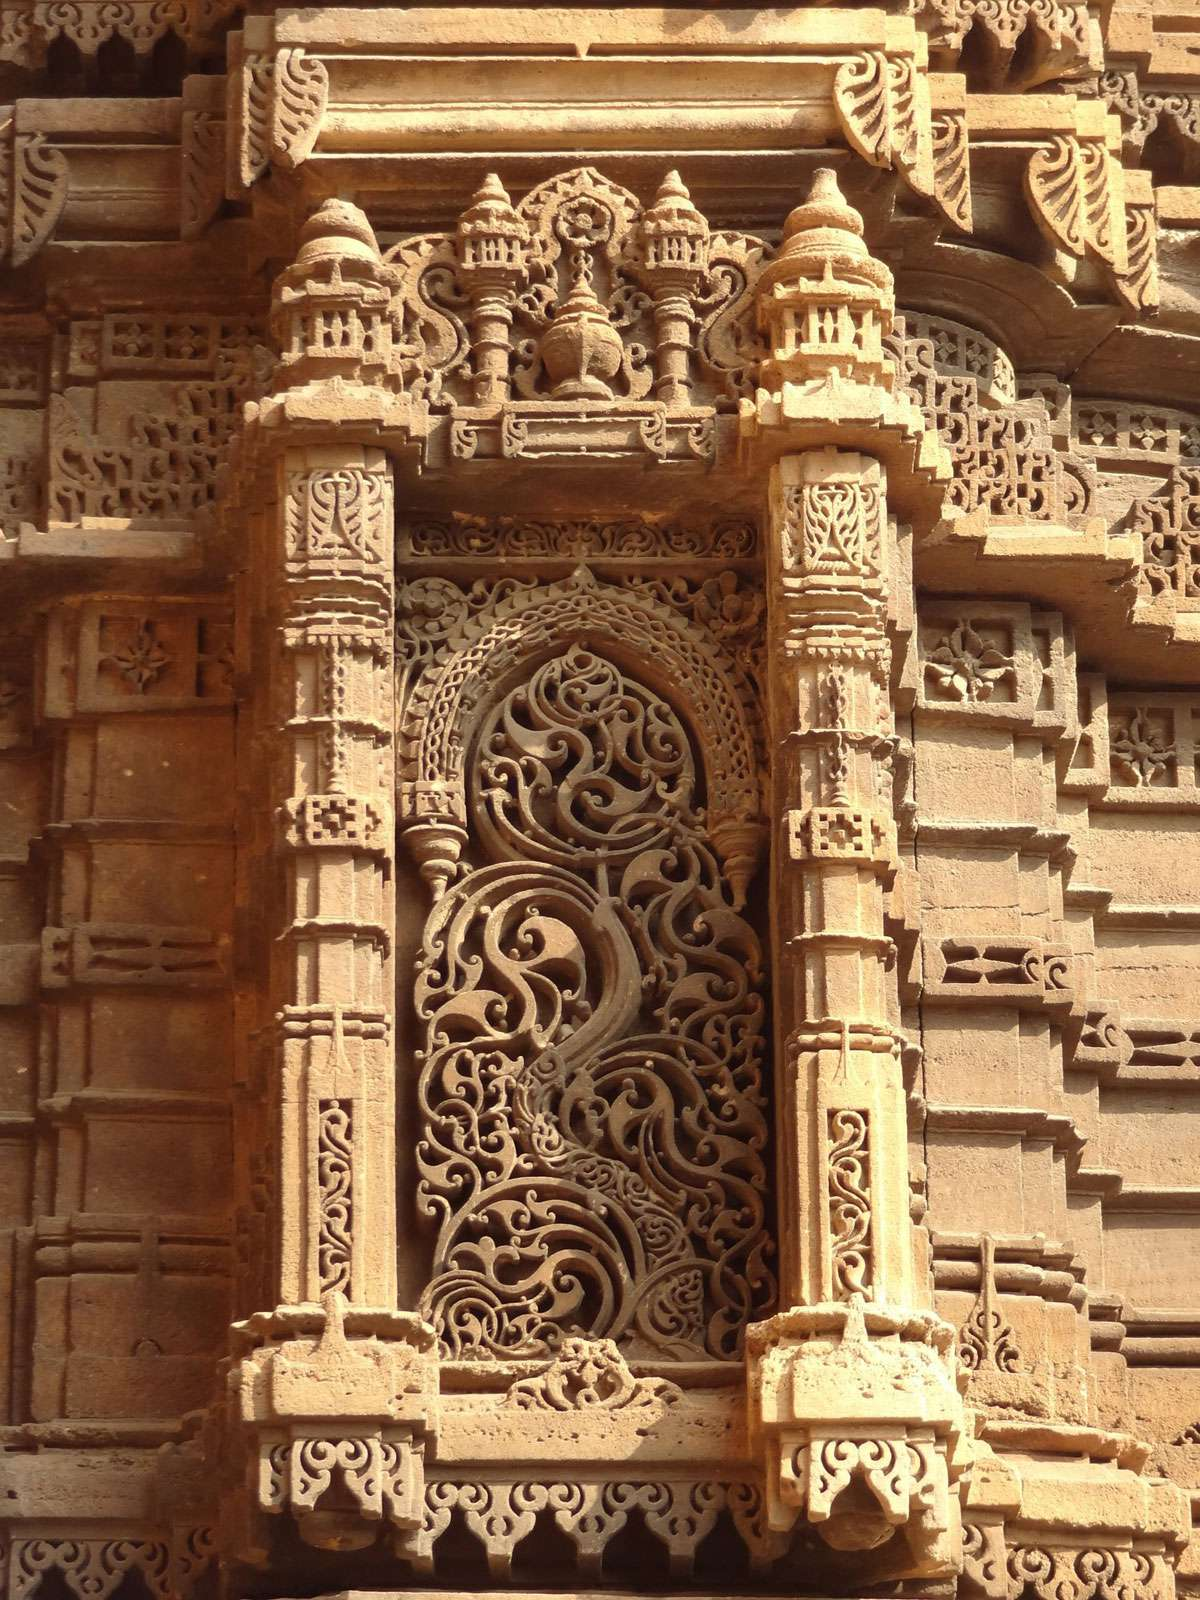 Intricately Carved Minaret of Rani Rupmati's mosque in the walled city of Ahmadabad Photo: Khushi Shah. Photo: UNESCO